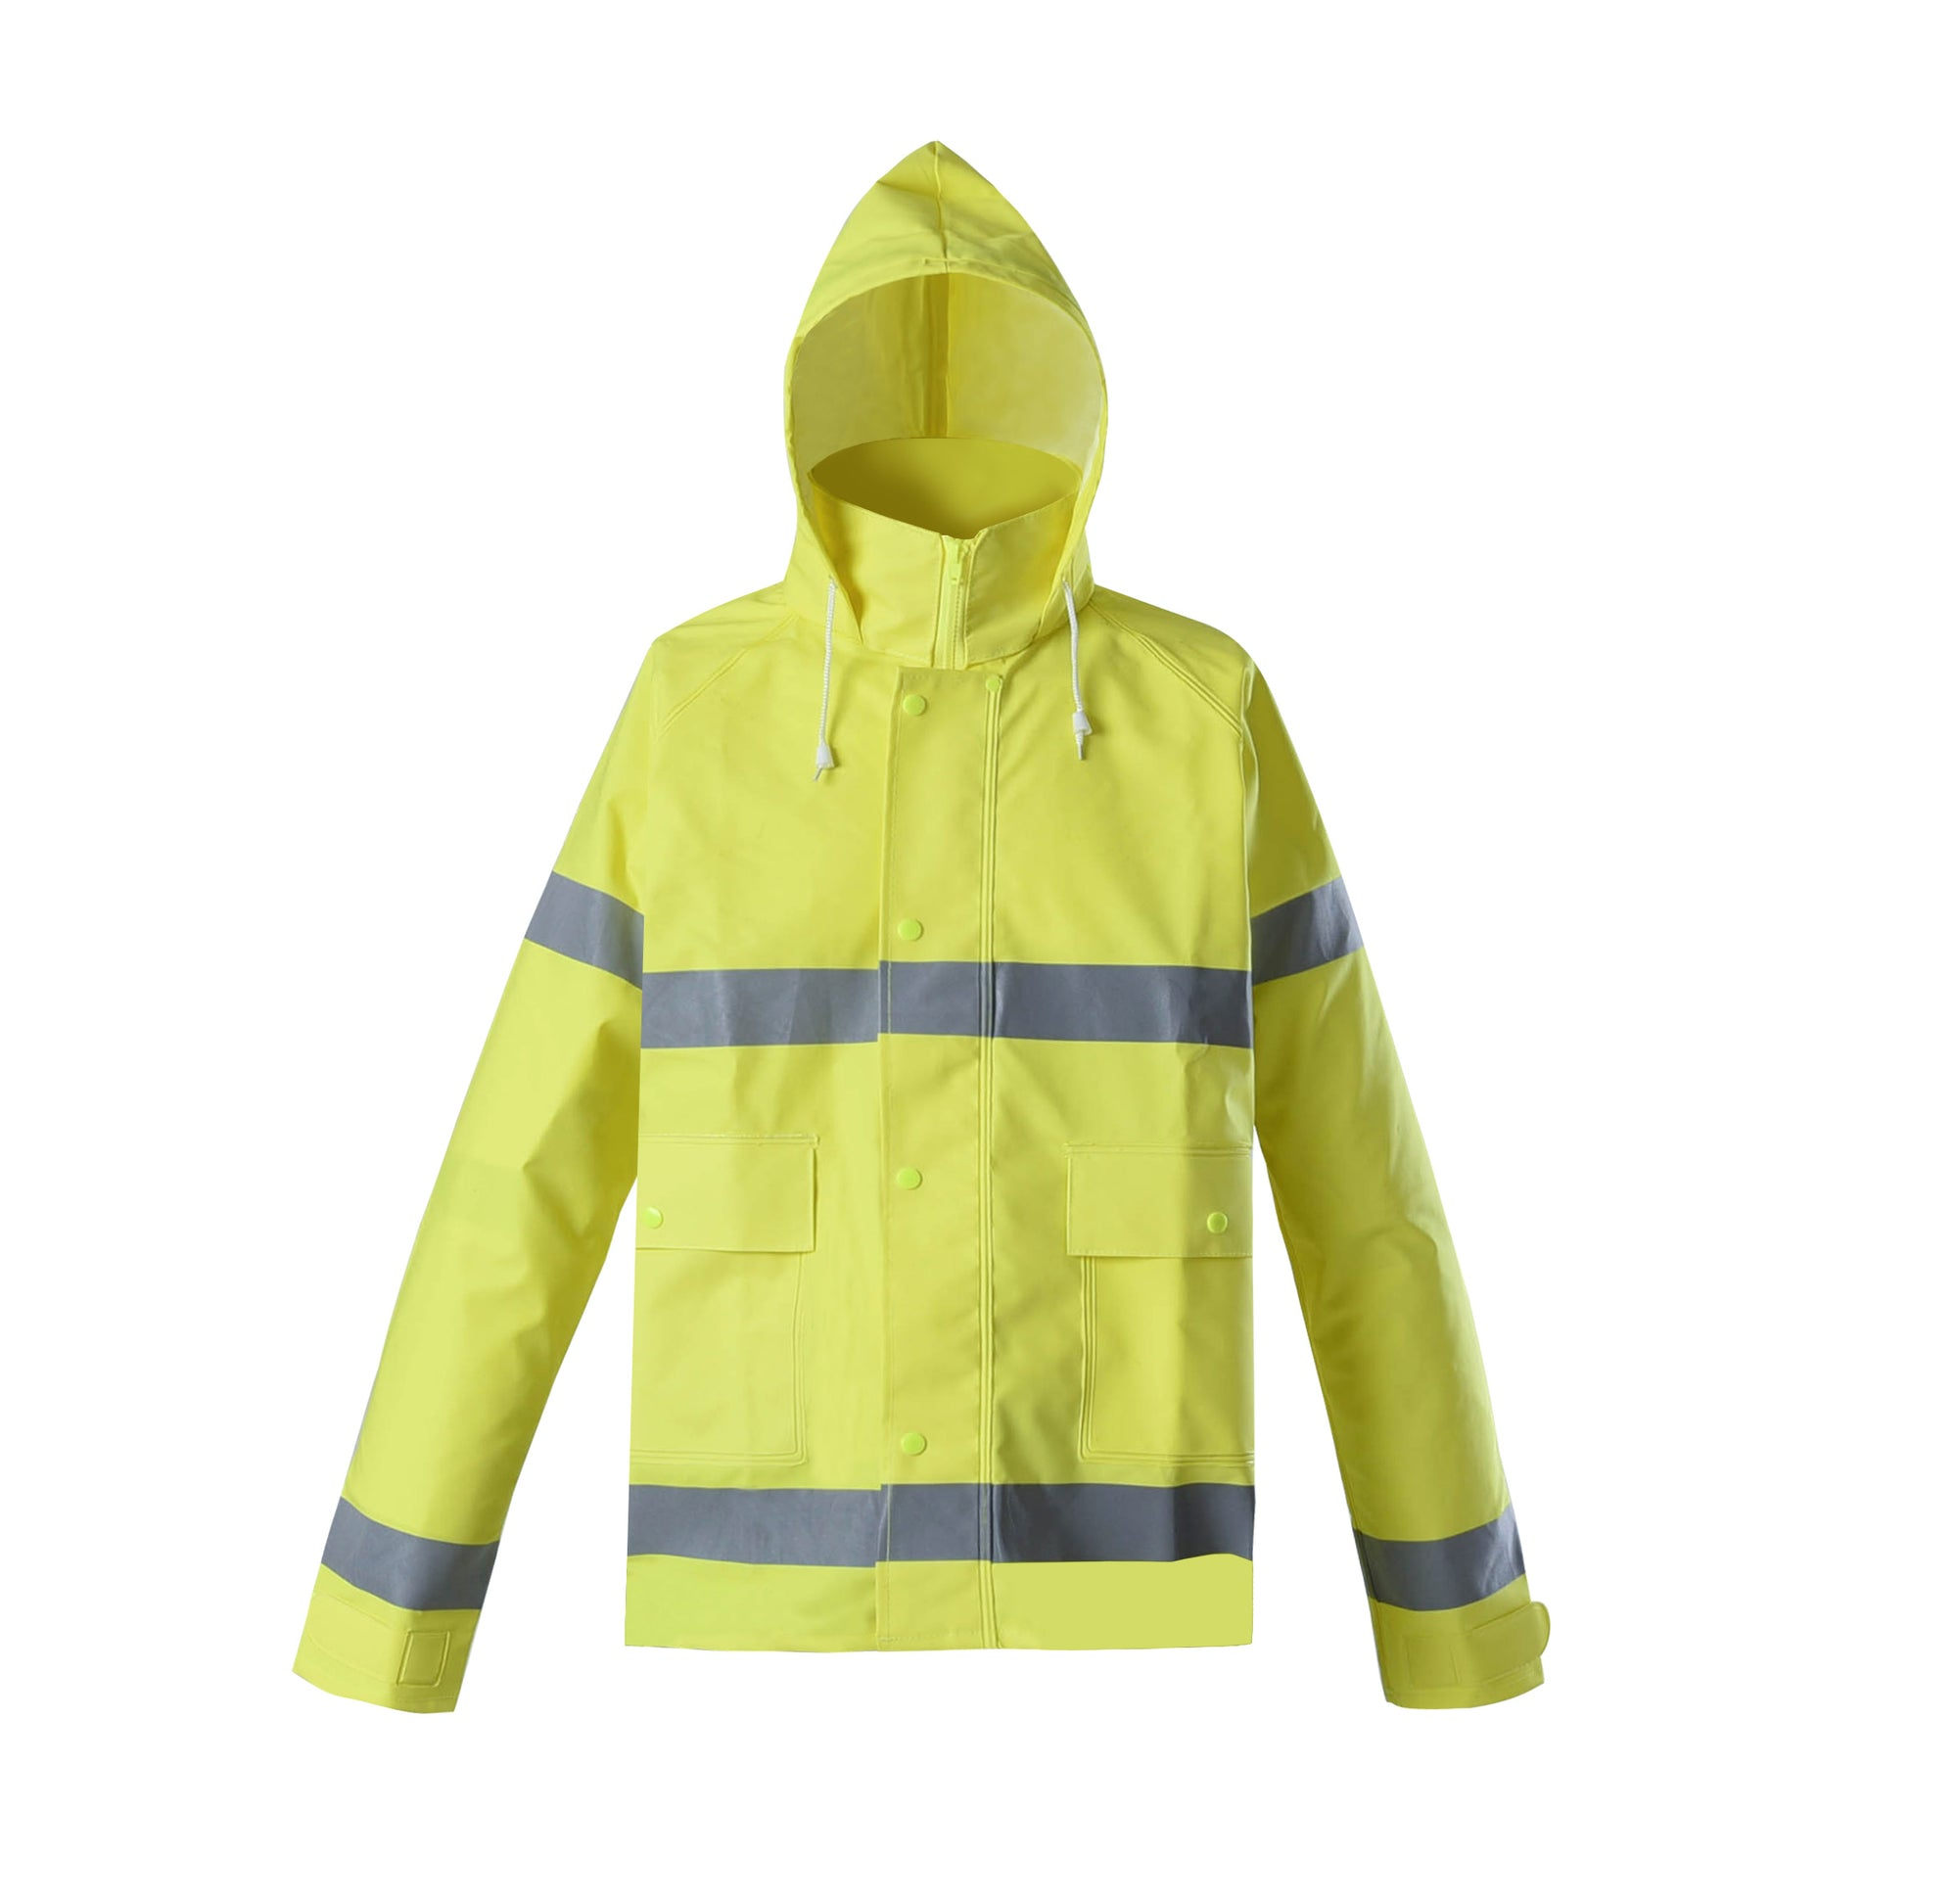 Brite Safety Style 5212 FR Safety Raingear,  Hi Vis Rain Jacket with Hood, Waterproof, ANSI 107 Class 3 Compliant